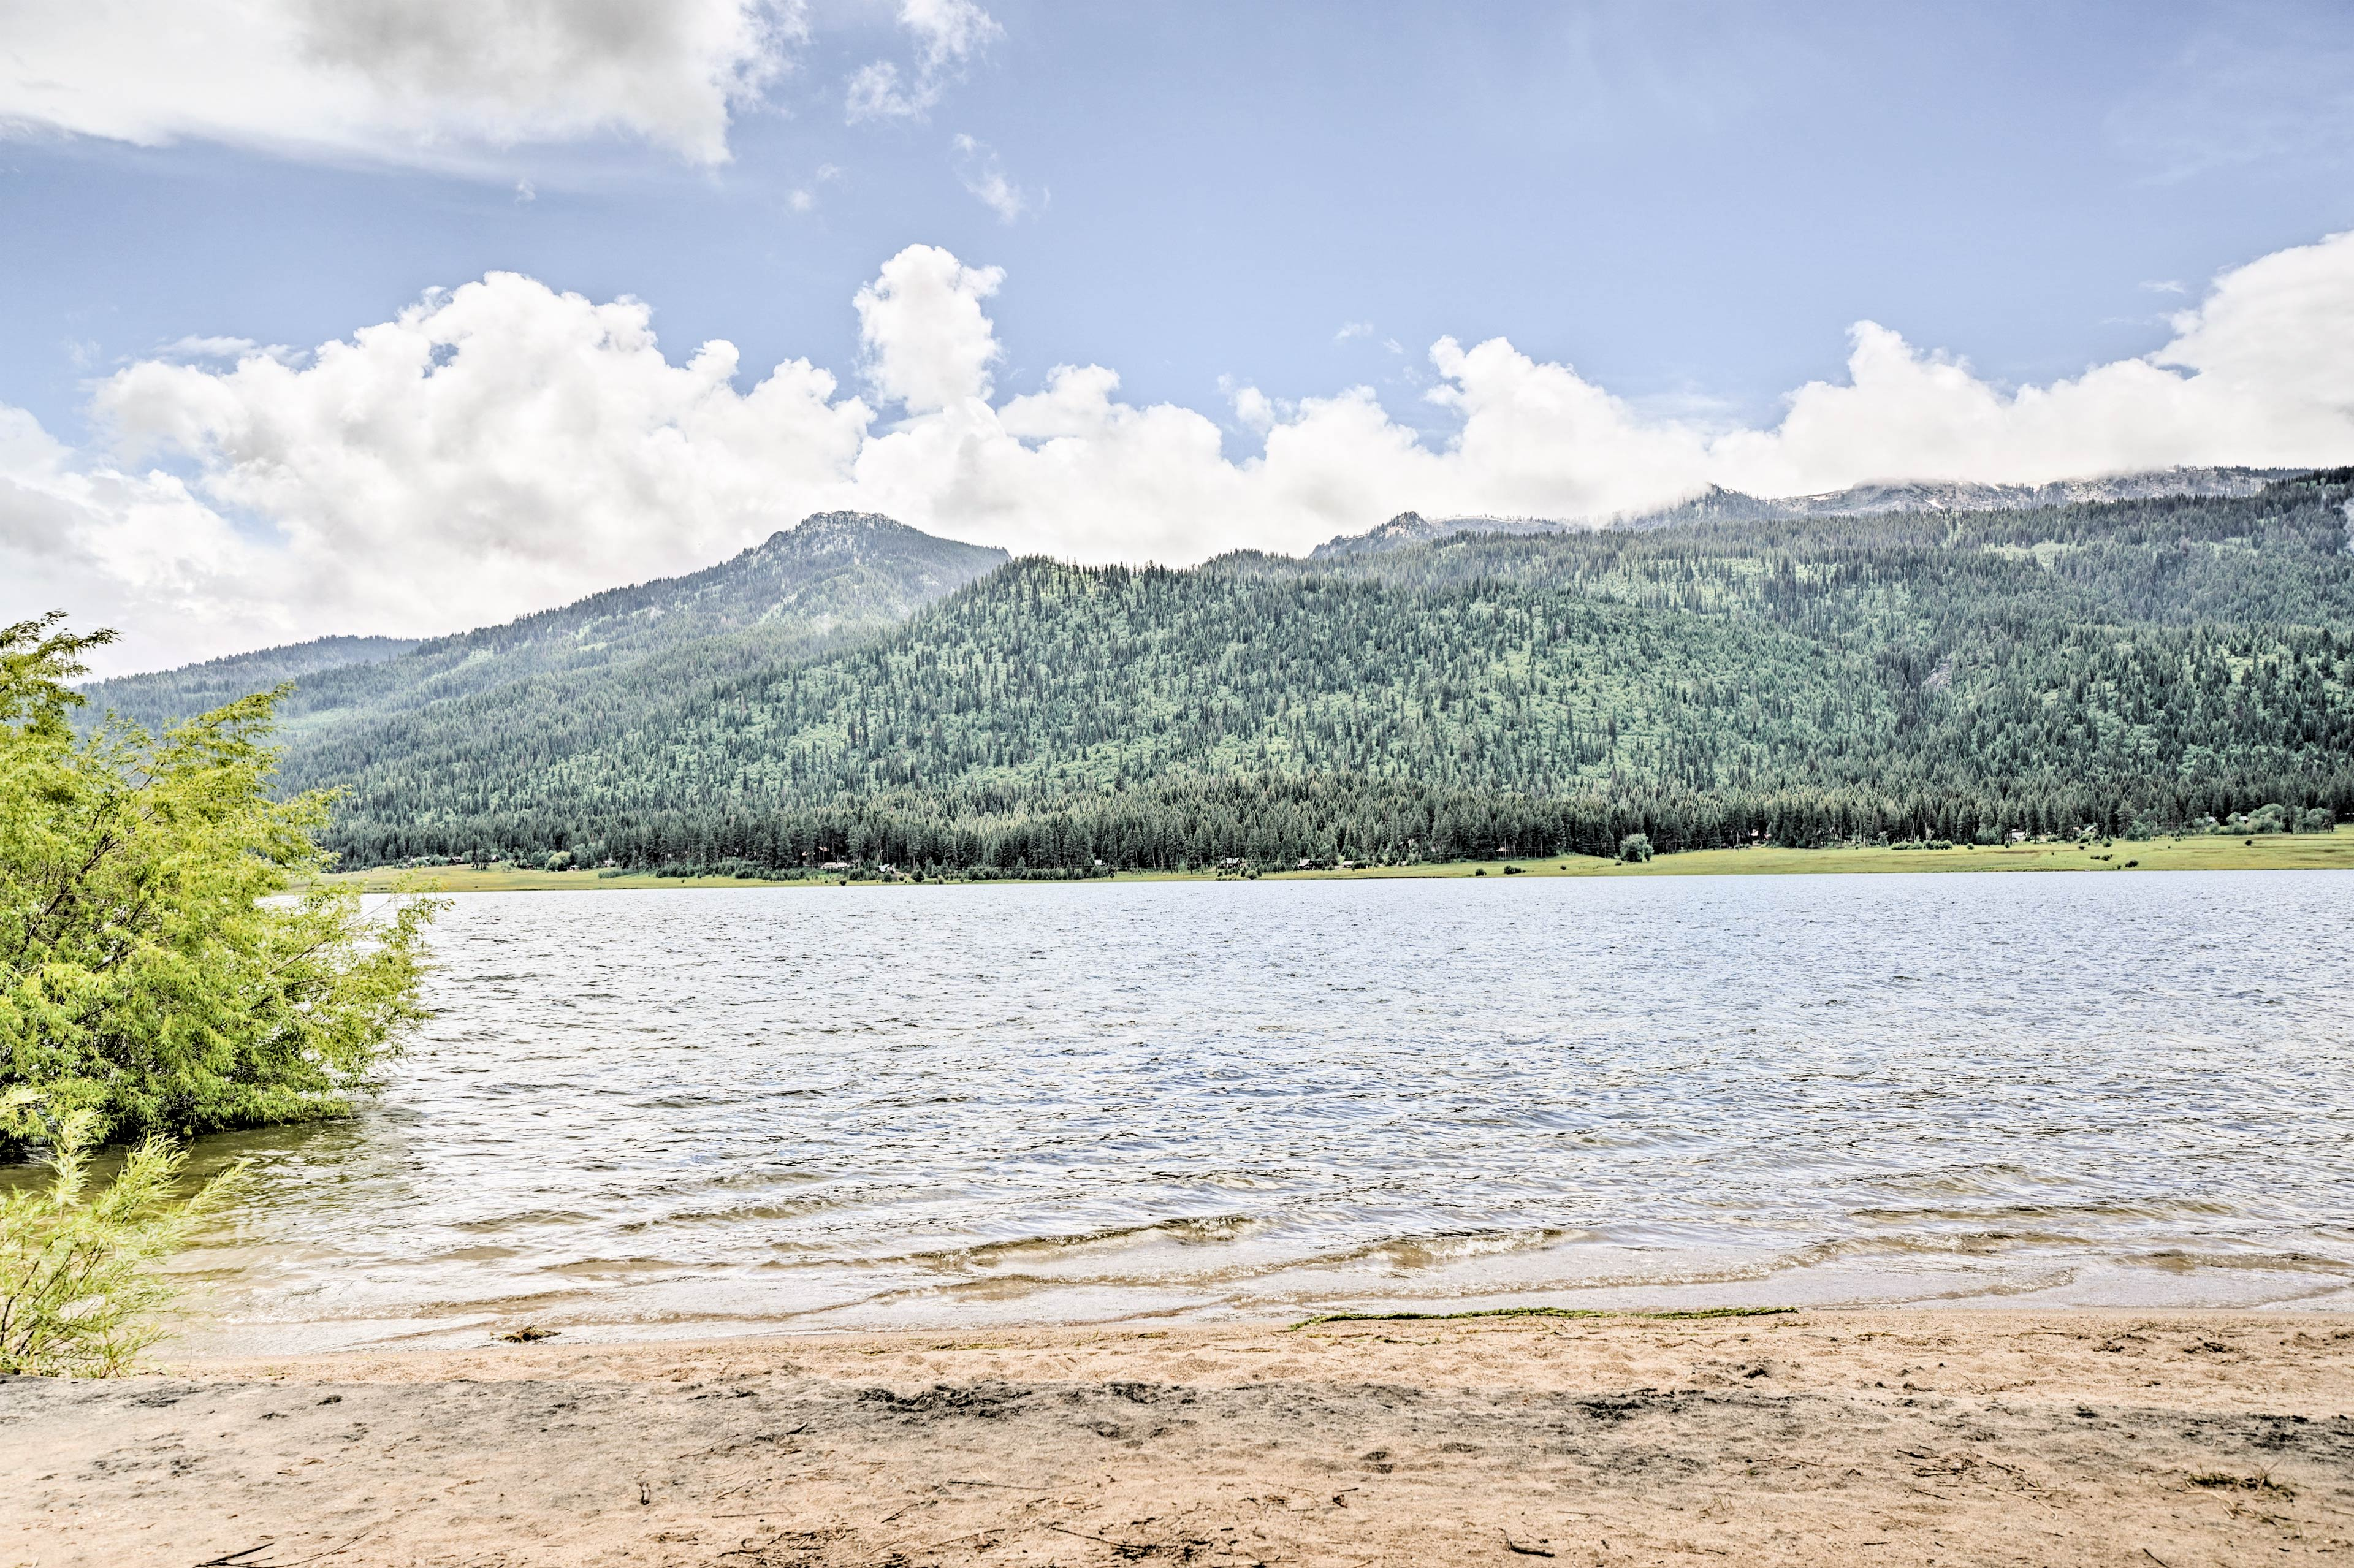 Perfect your sun-kissed tan while sunbathing on the sandy shore of the lake.